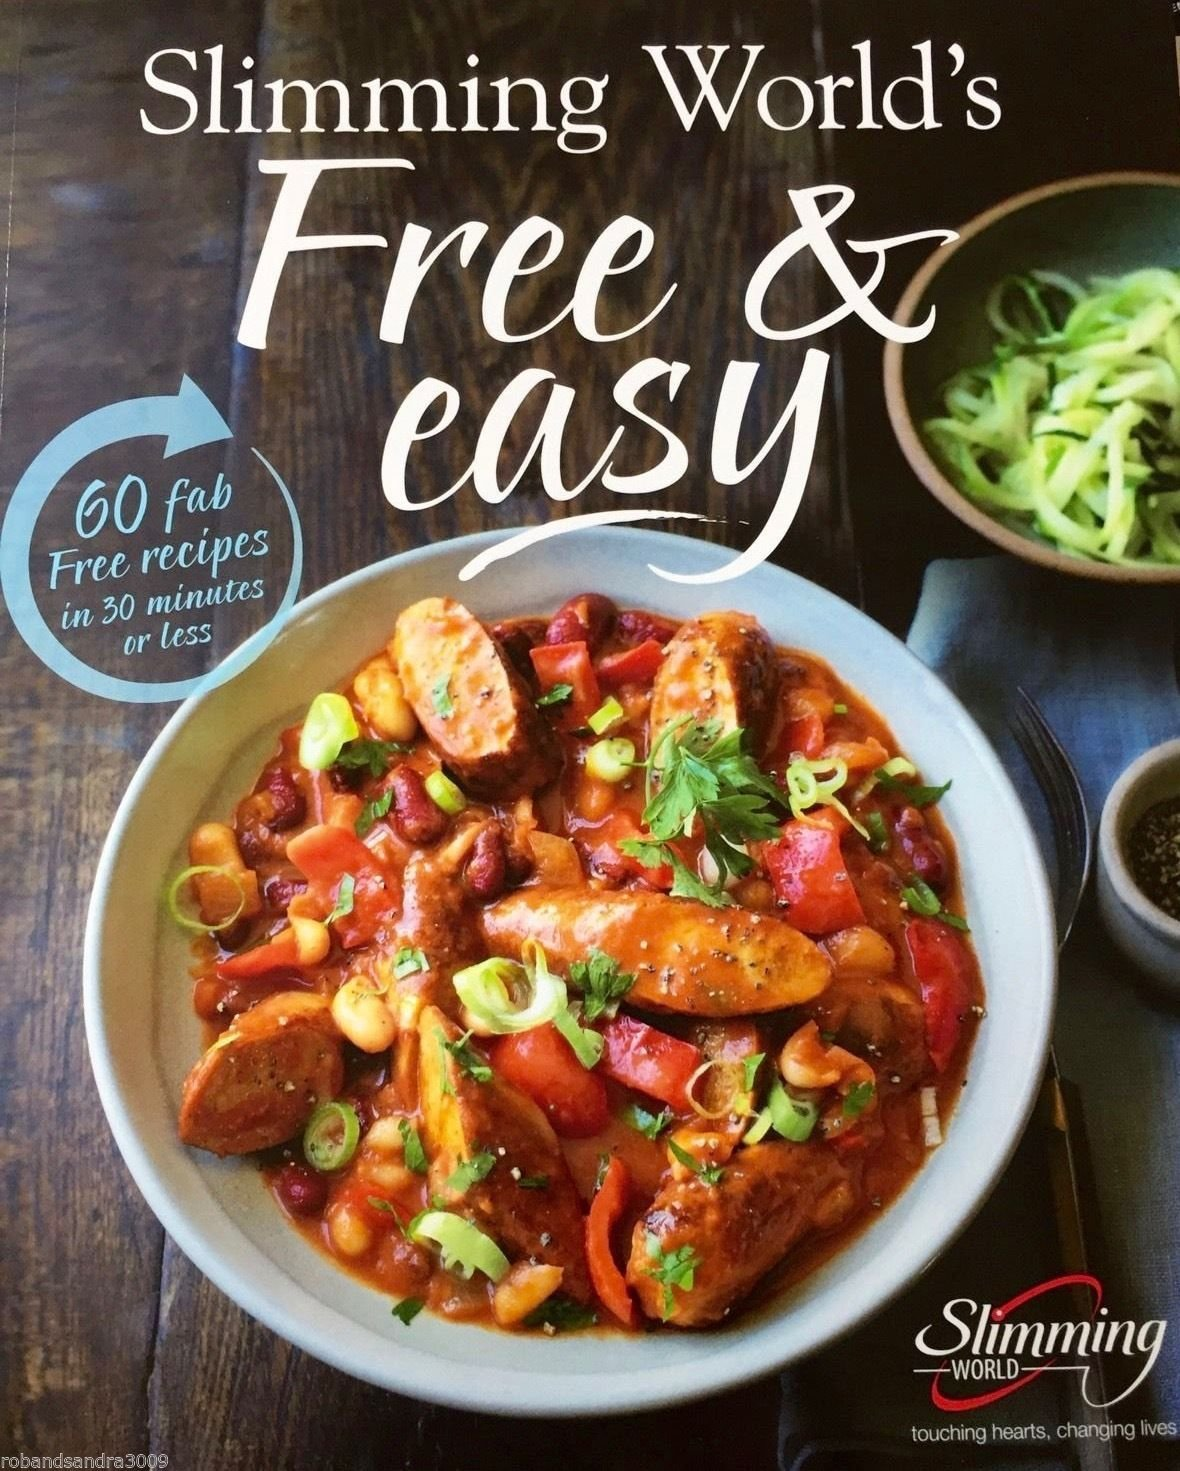 Slimming world free easy cook book new 2017 amazon books forumfinder Choice Image